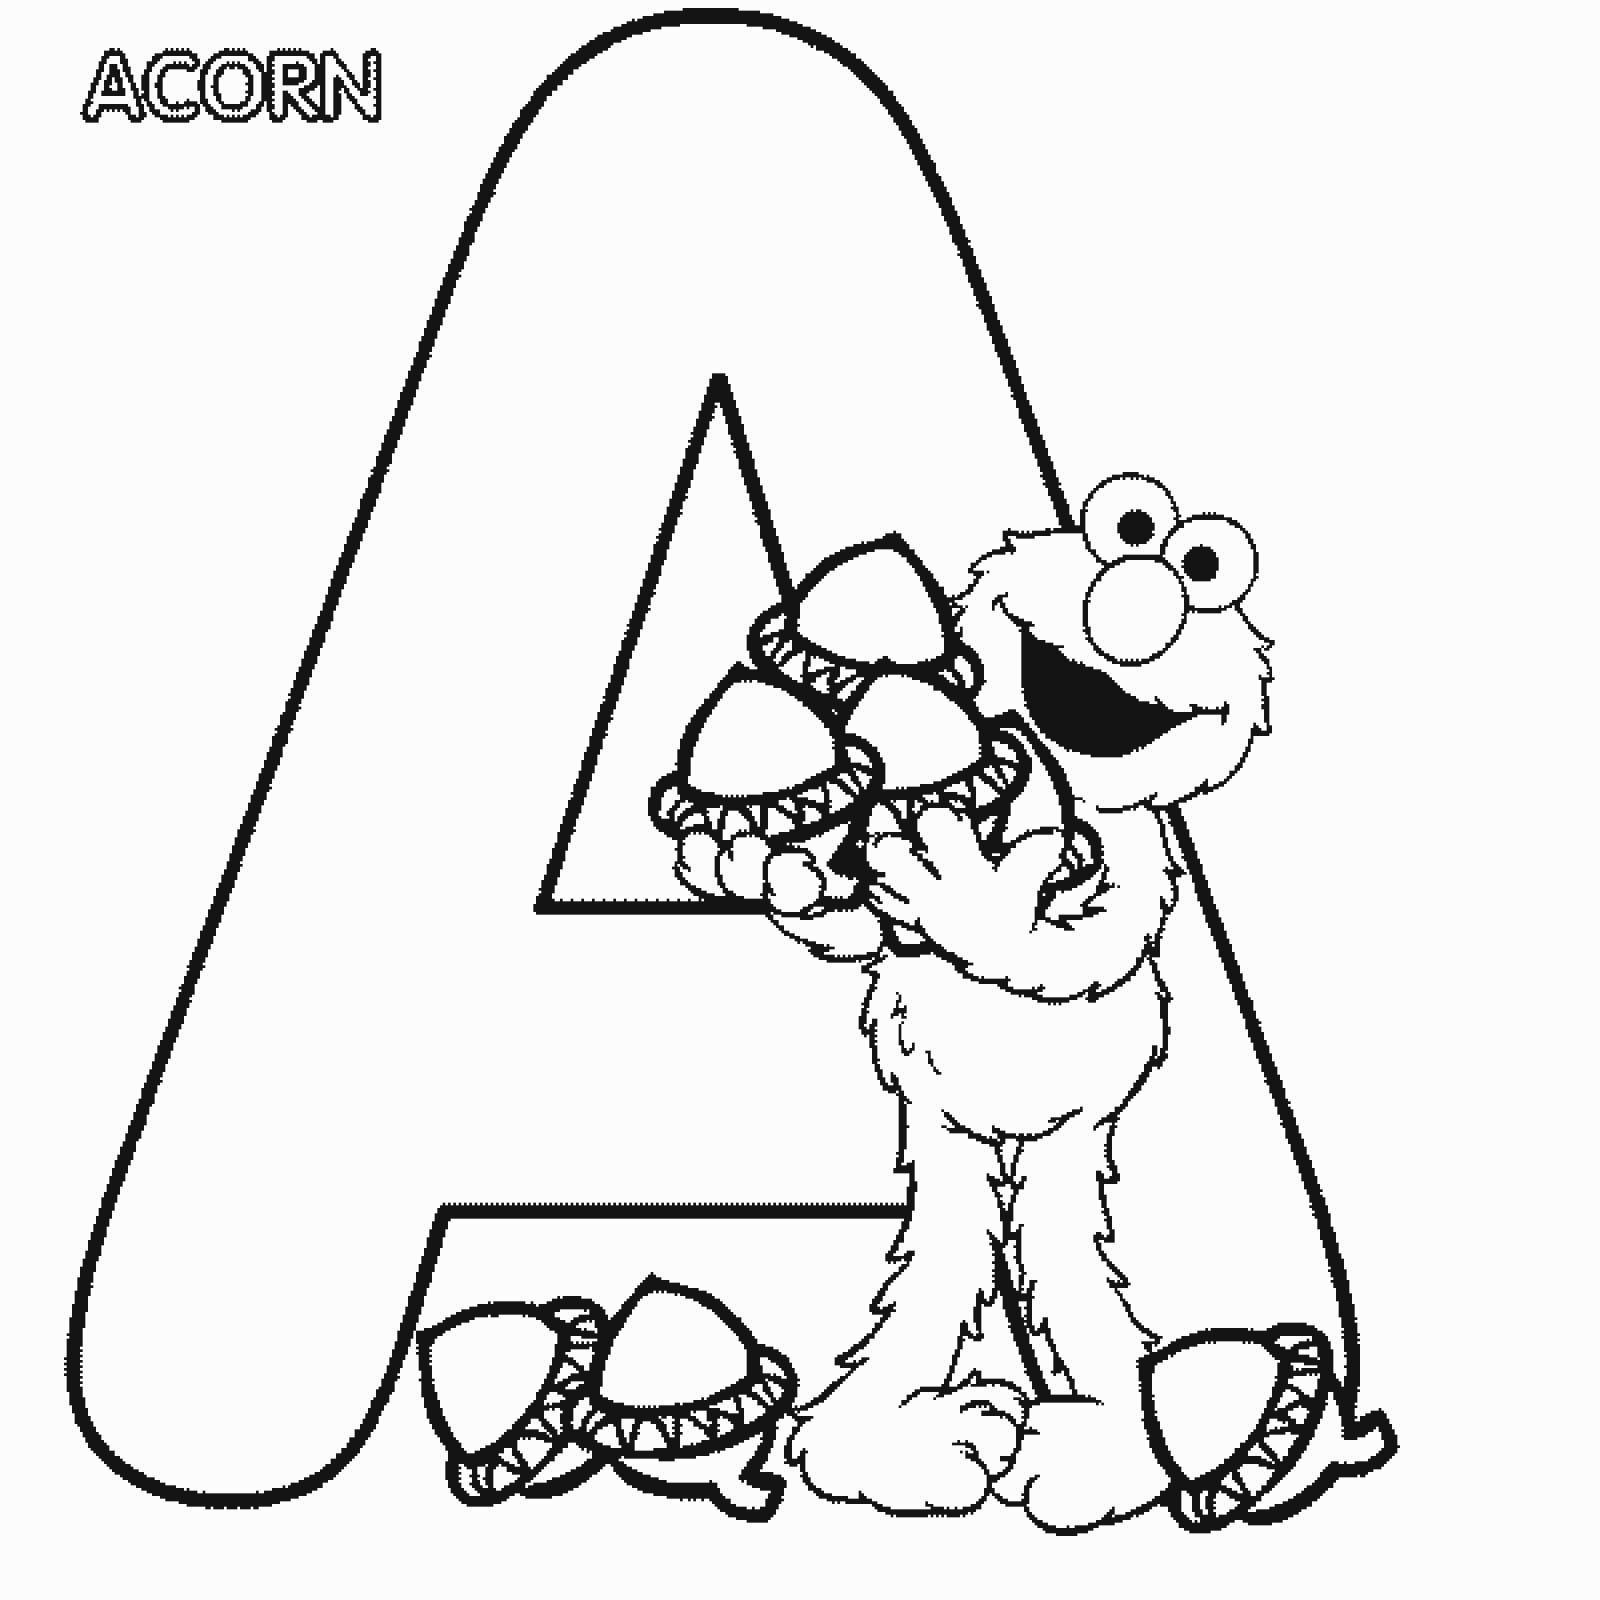 Elmo Alphabet Coloring Pages Coloring Home Free And Printable Coloring Pages